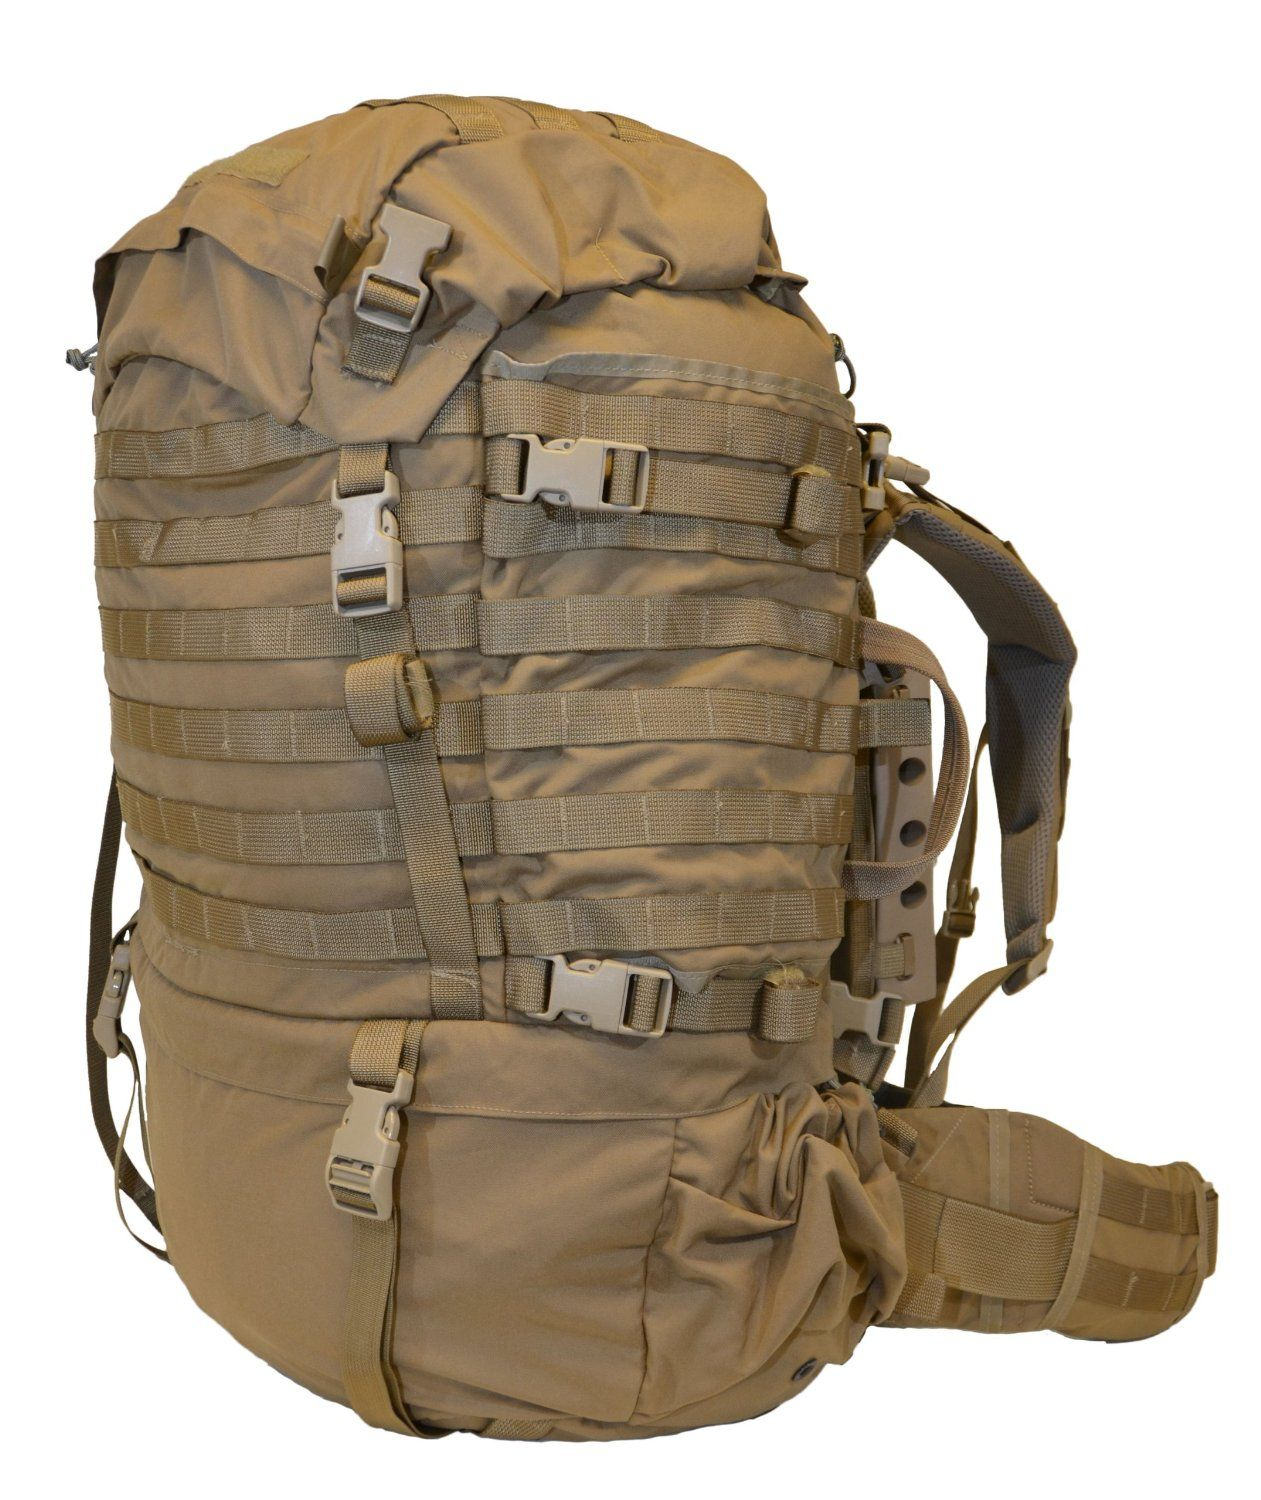 1d729e1f3a Amazon.com   Coyote USMC Marine FILBE Rucksack Complete Pack System    Tactical Backpacks   Sports   Outdoors